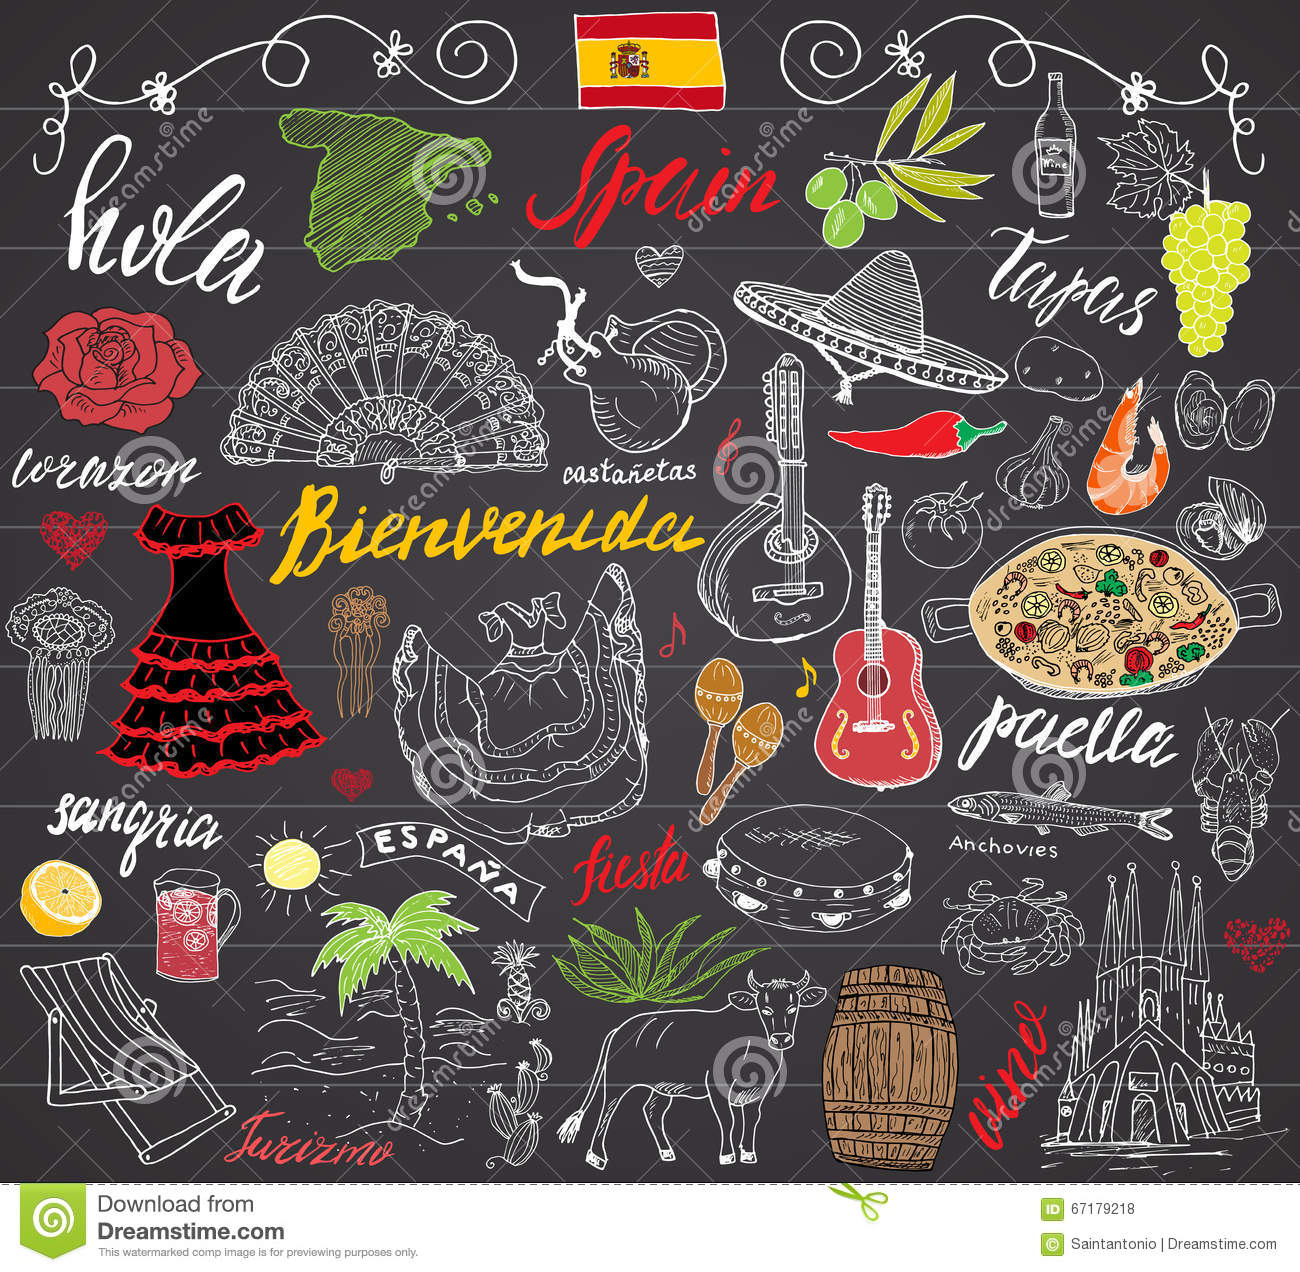 Stock vector music hand lettering and doodles elements - Spain Doodles Elements Hand Drawn Set With Spanish Lettering Food Paella Shrimp